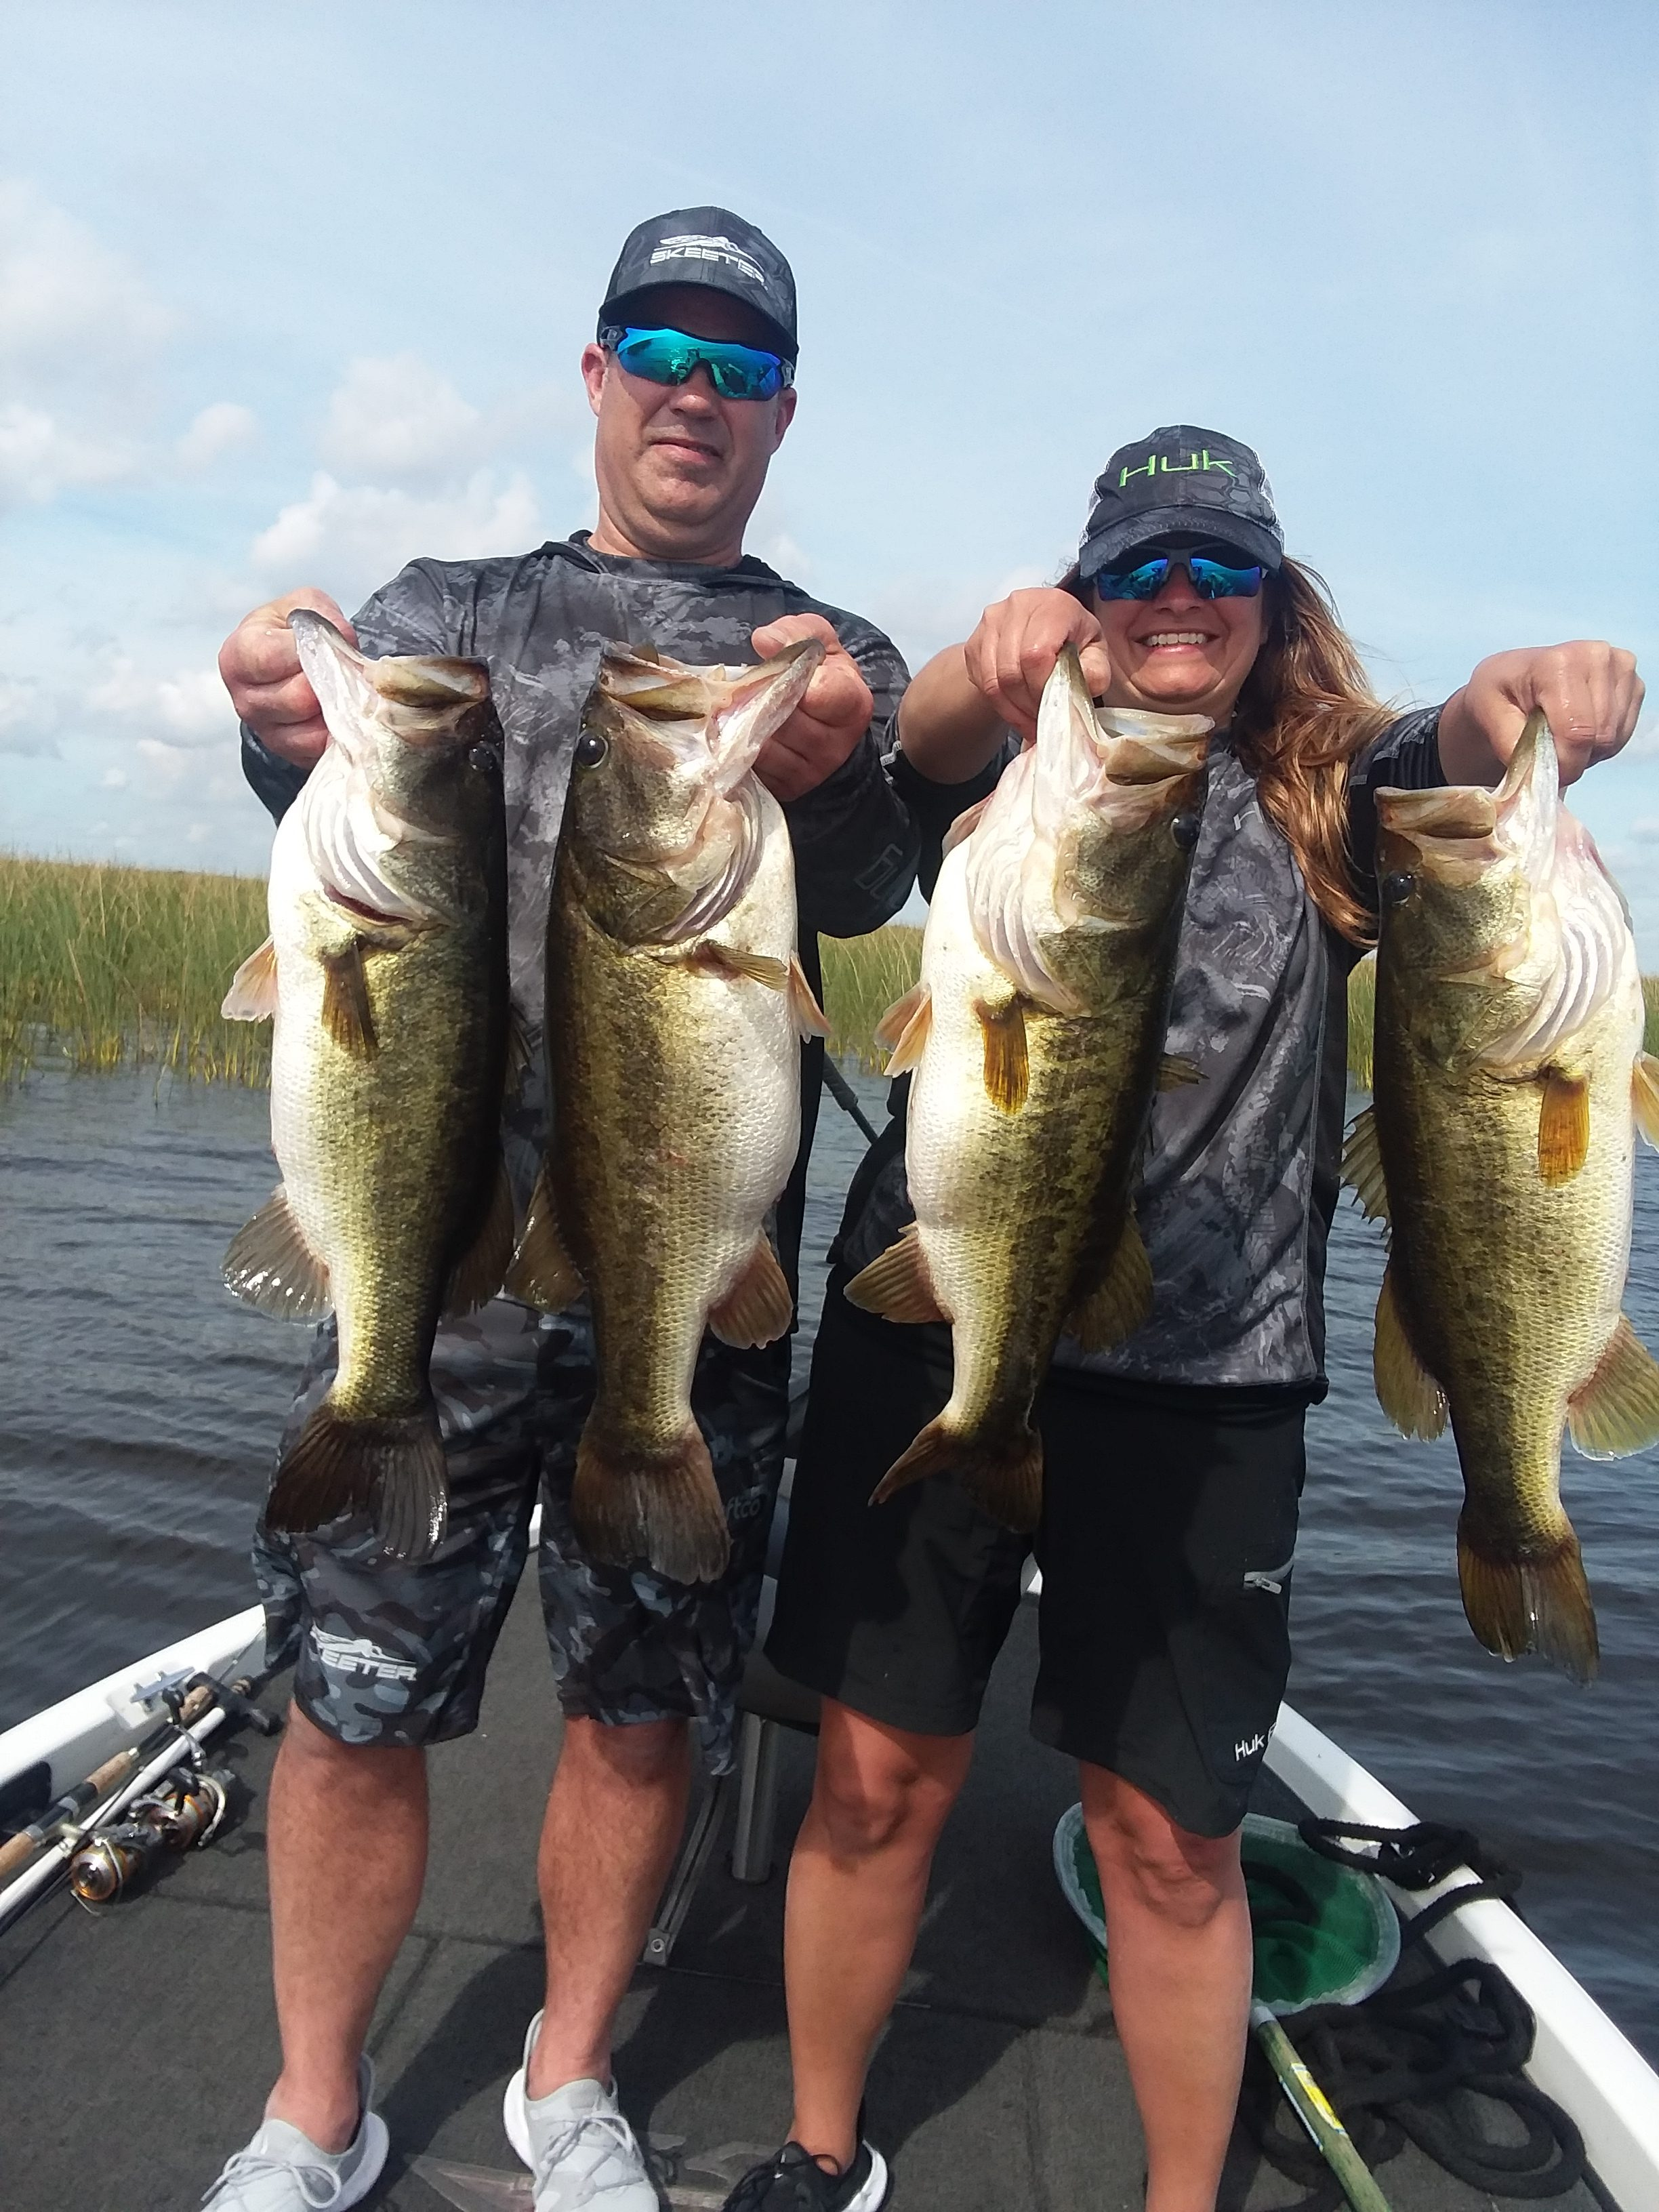 Lake Okeechobee Fishing Guides- Okeechobee Fishing Report 4/25/19